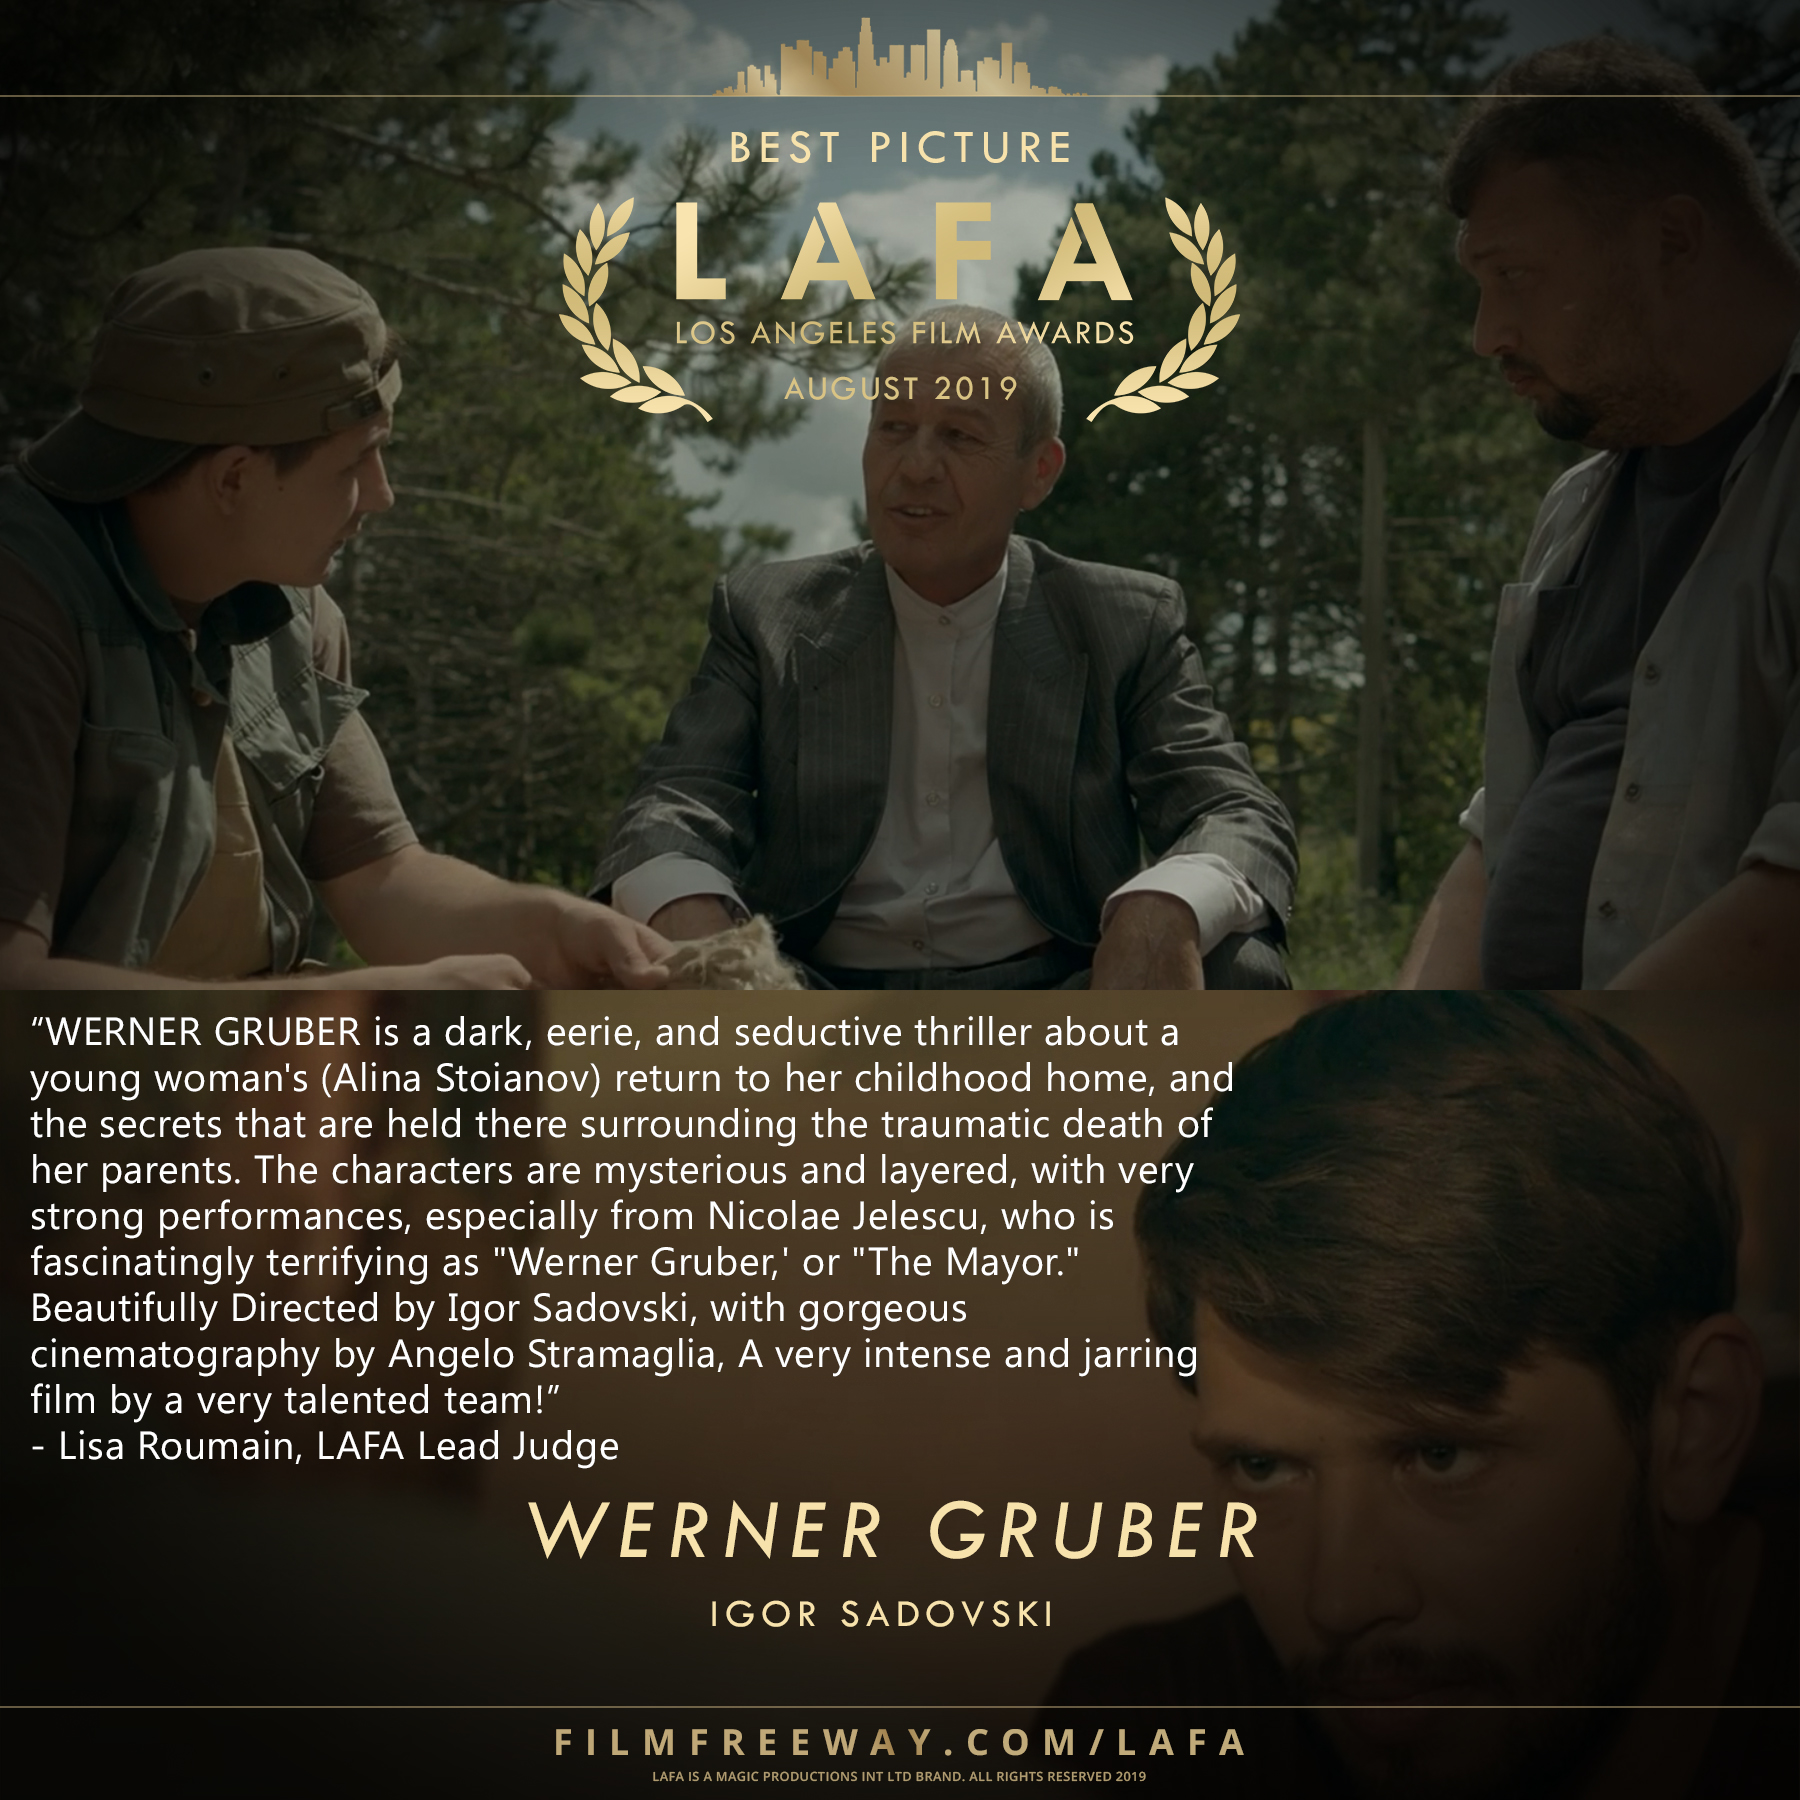 WERNER GRUBER review 2